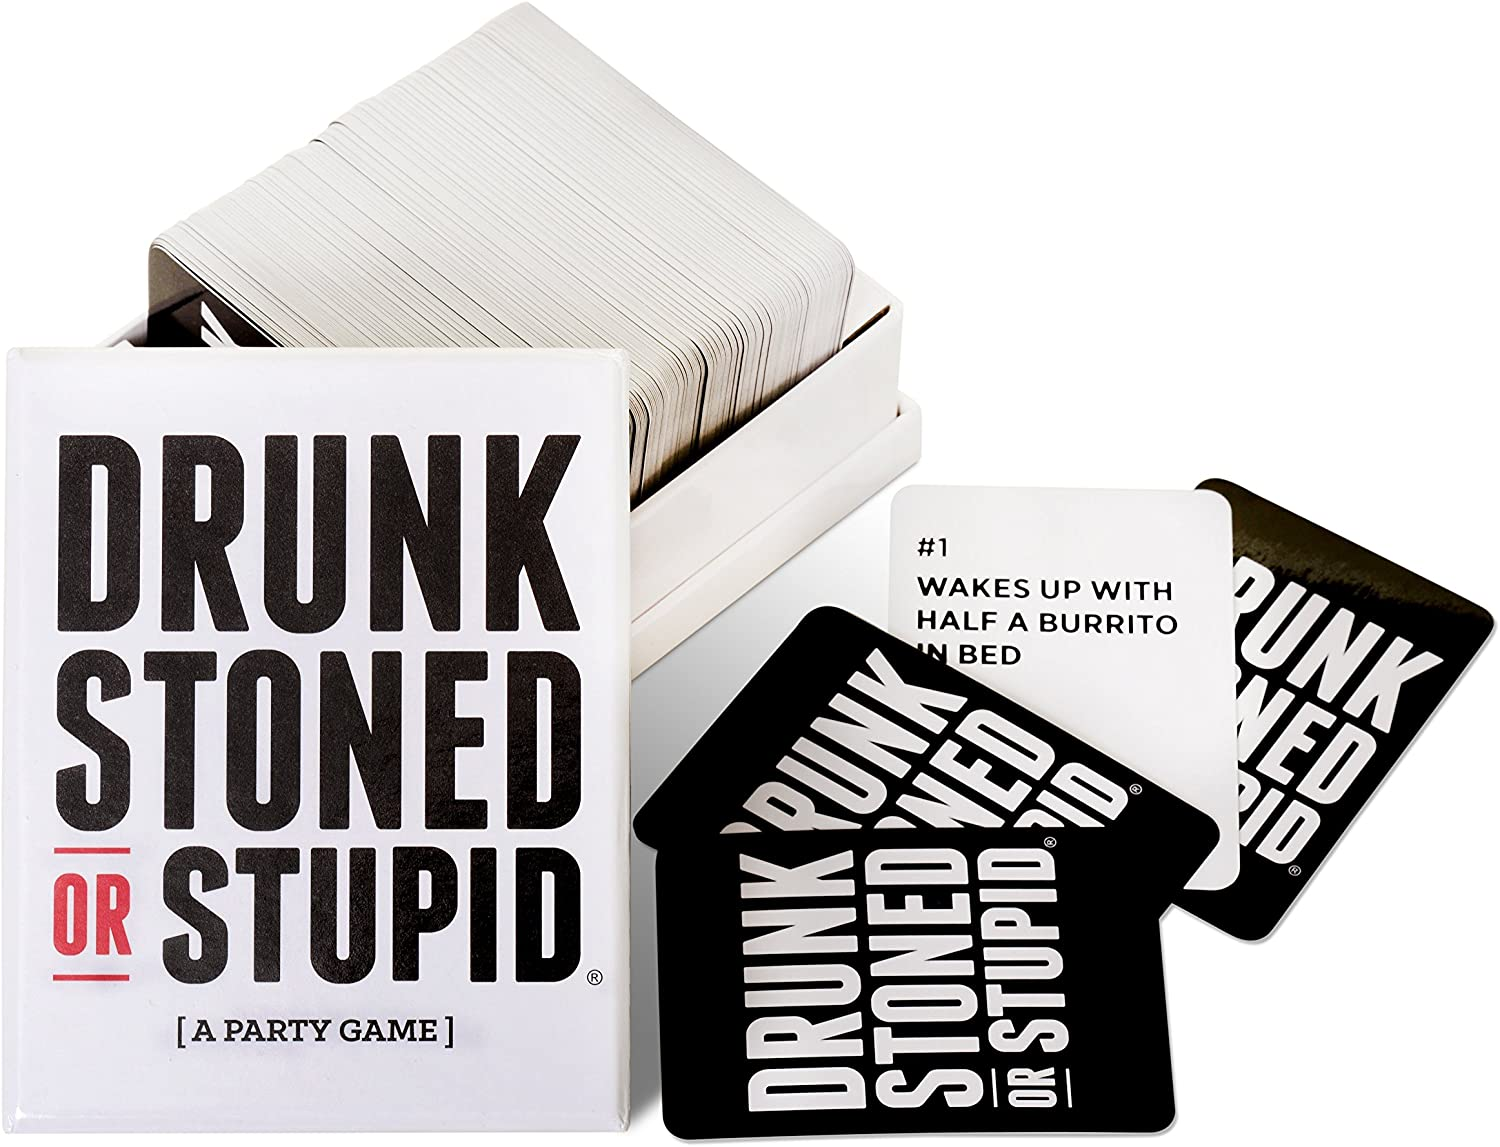 9. A Fun Adult Party Game